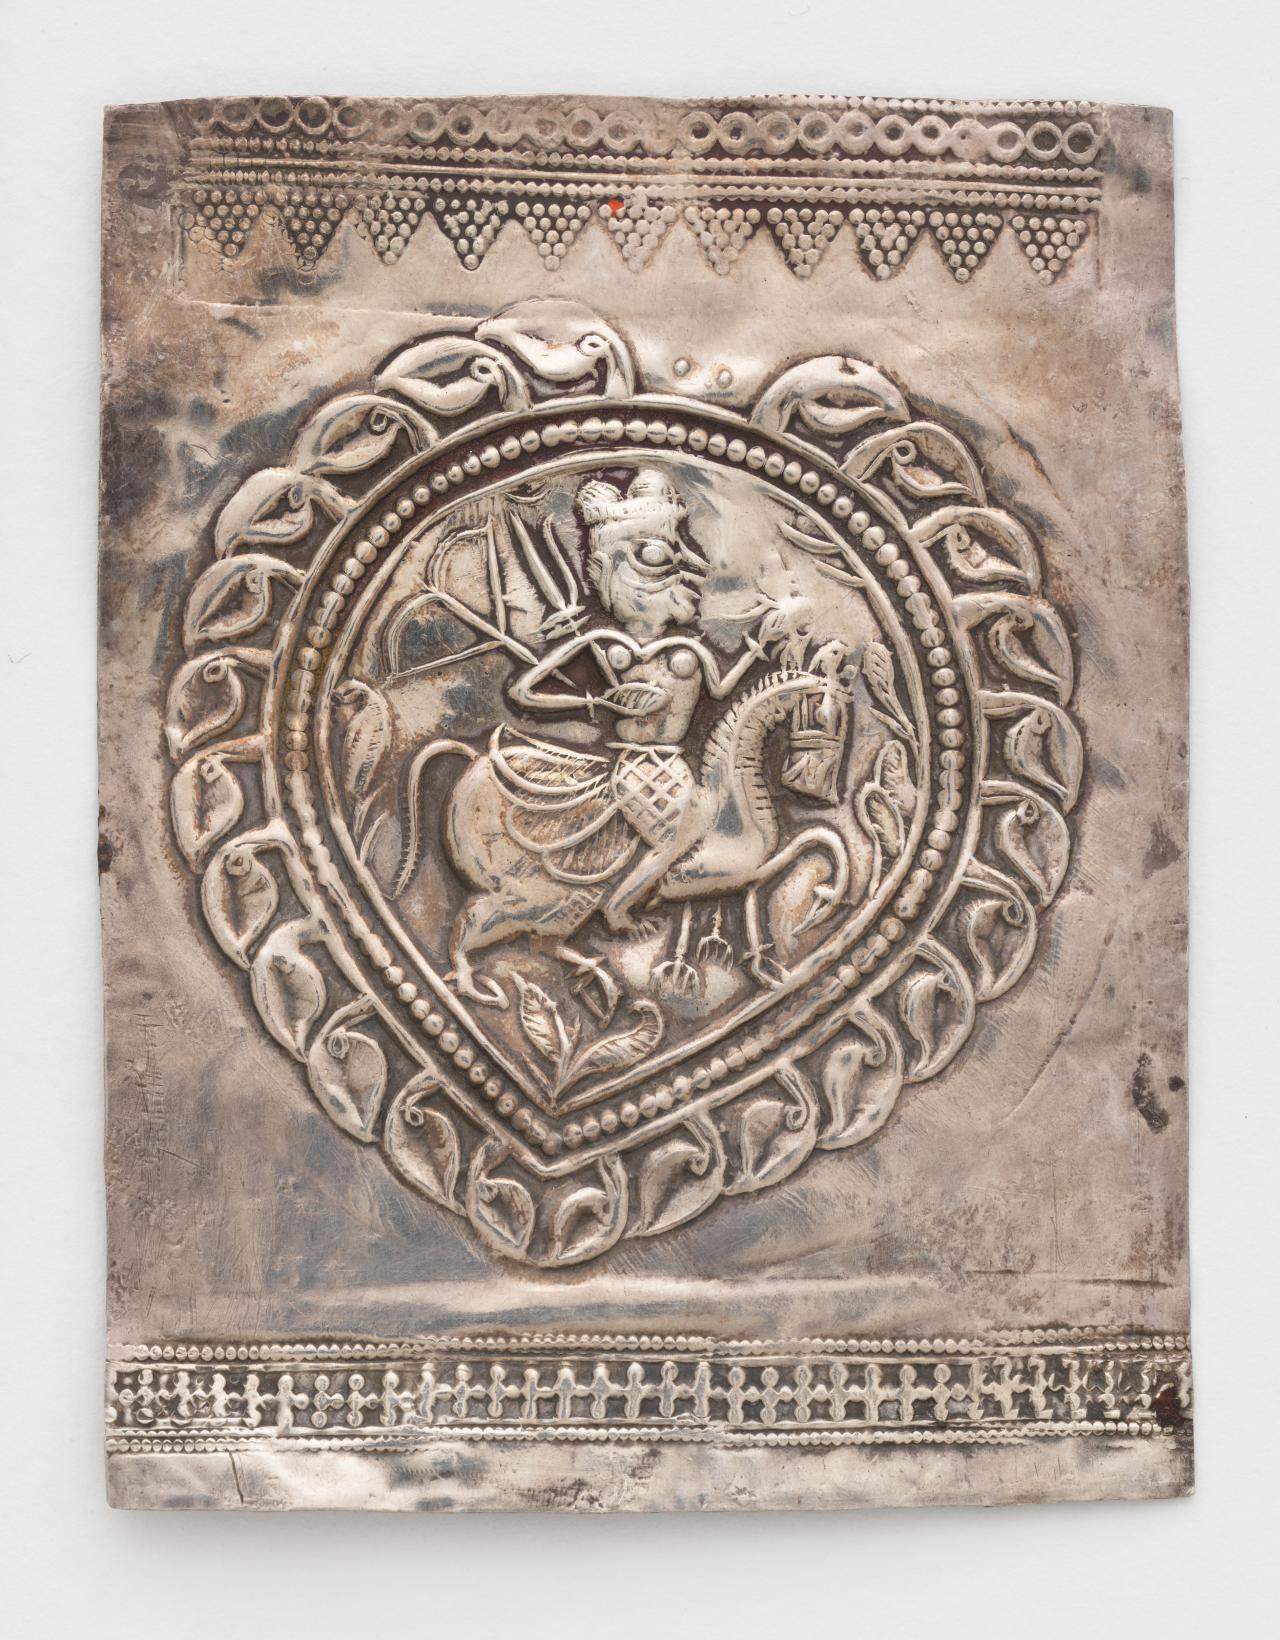 Pilgrimage and devotional plaque (Phul) with folk hero